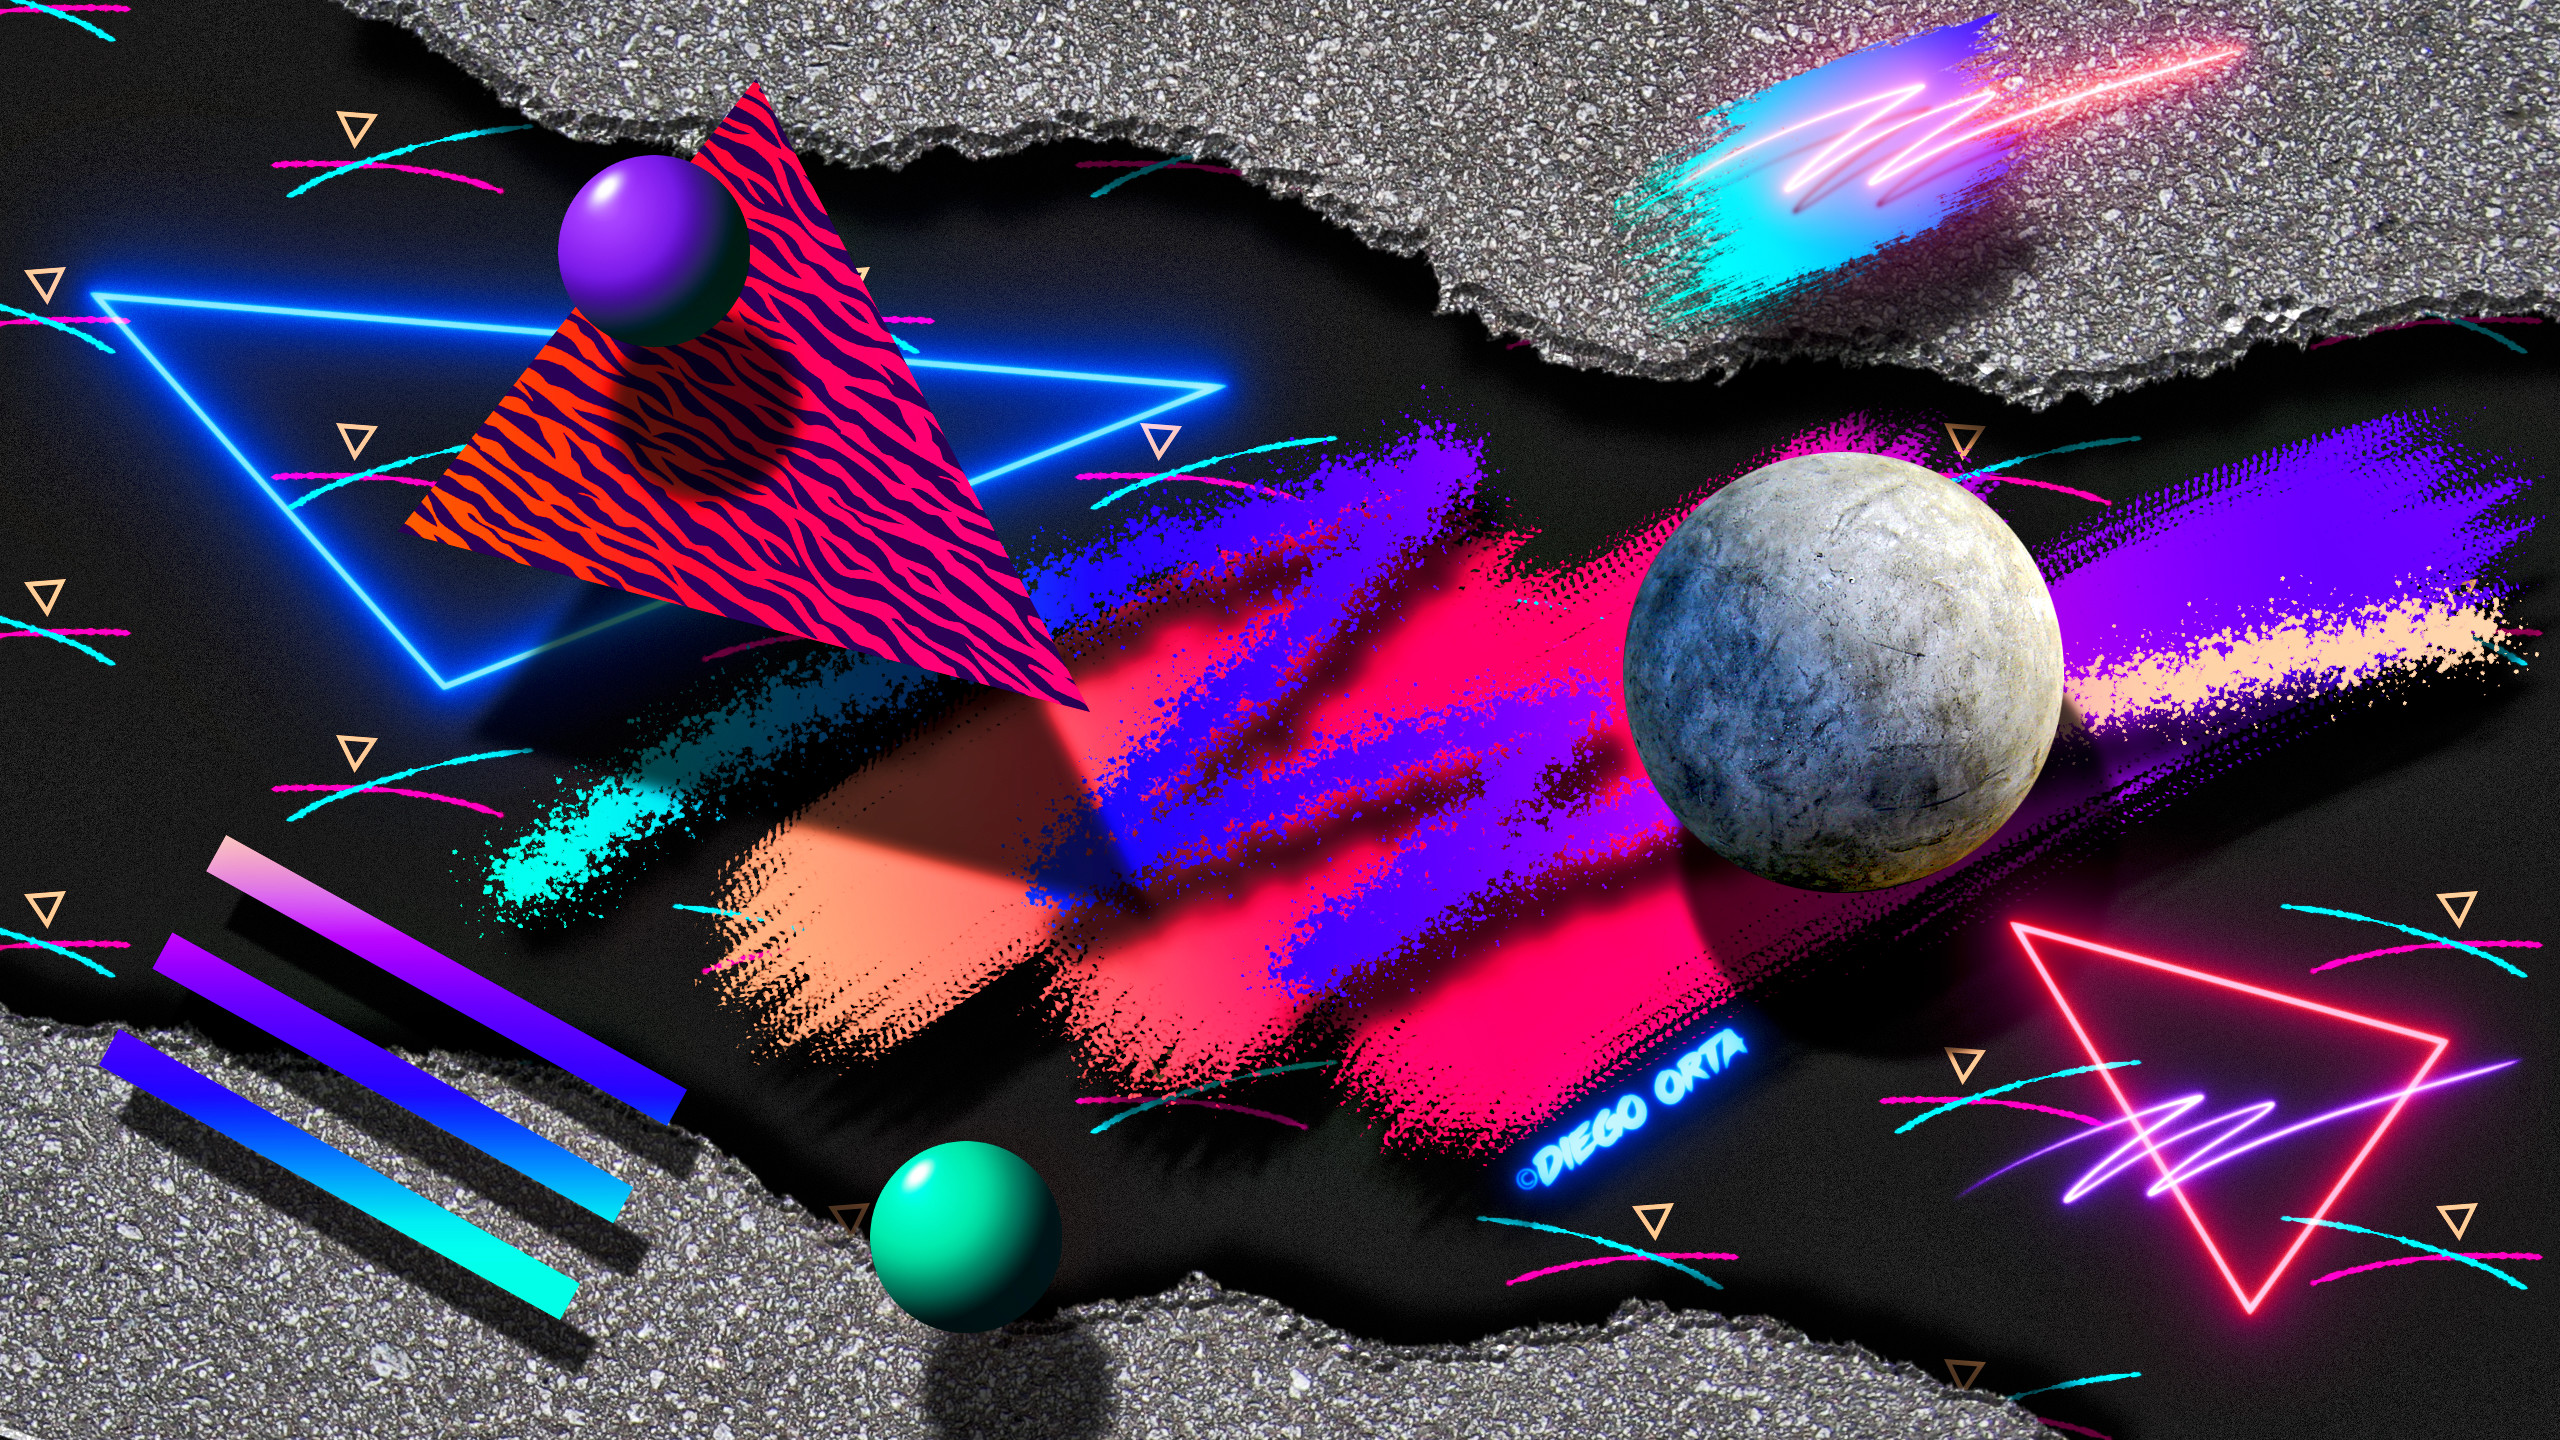 77 Neon 80S Wallpapers on WallpaperPlay 2560x1440